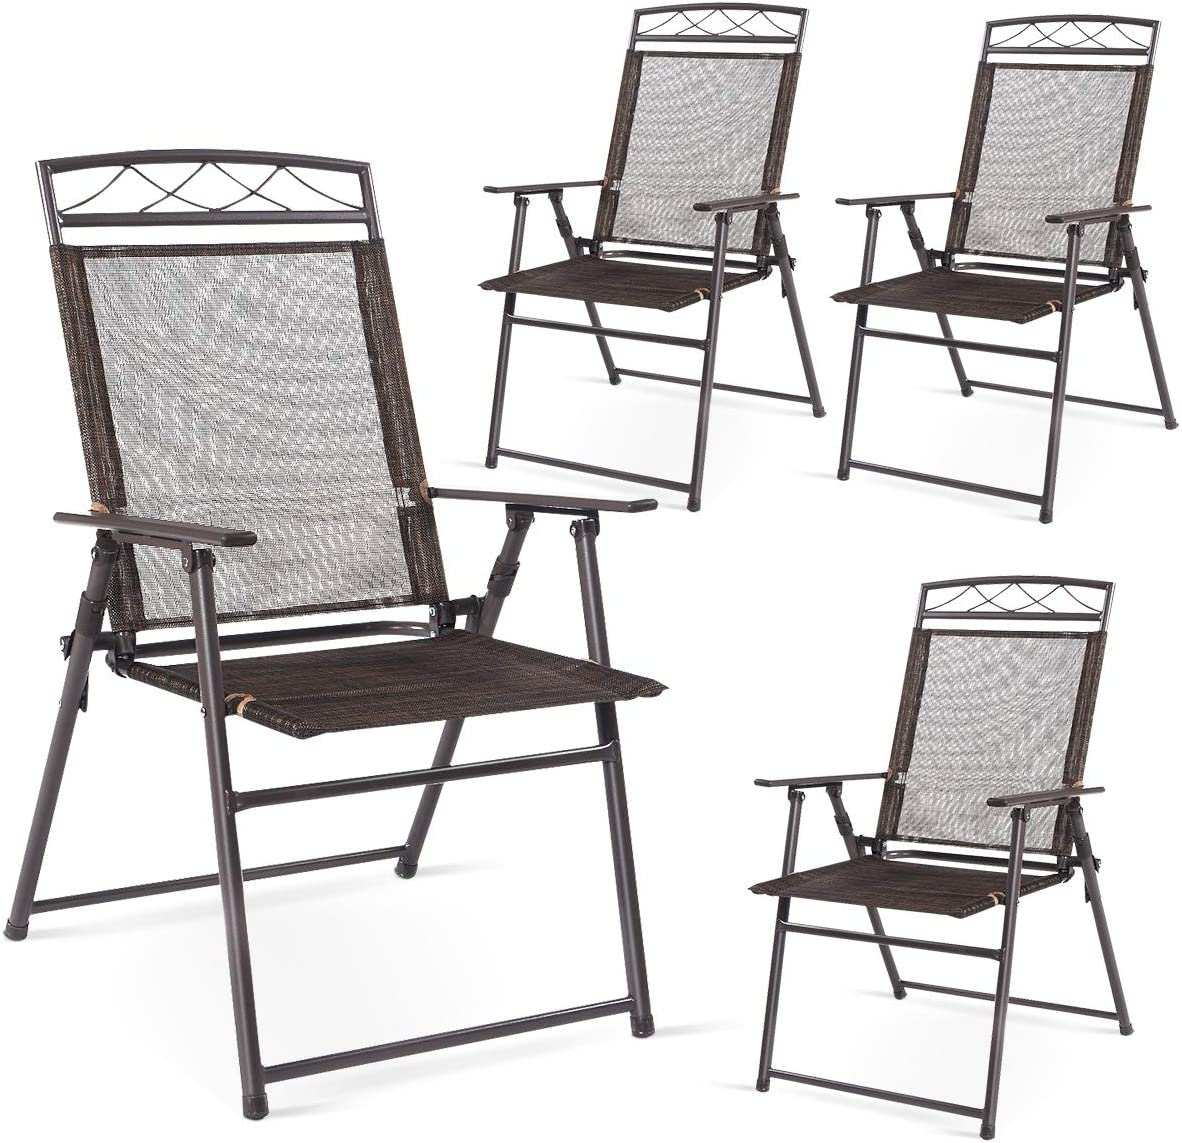 Safstar Patio Folding Chairs Set of 4, Portable Sling Chair for Backyard Poolside Balcony Lawn